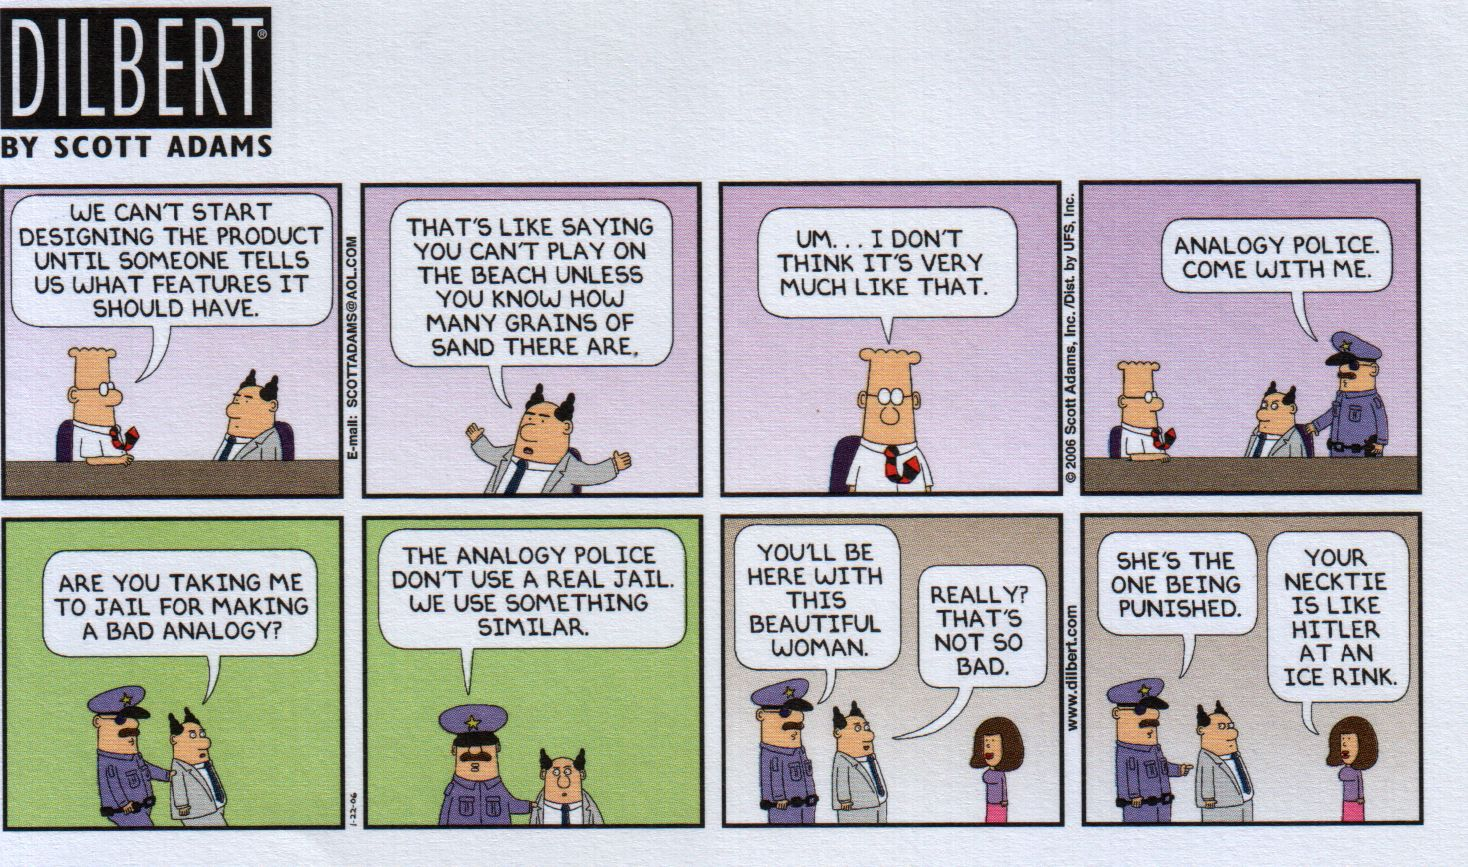 Dilbert Analogy Cartoon Pactiss Philosophers And Critical